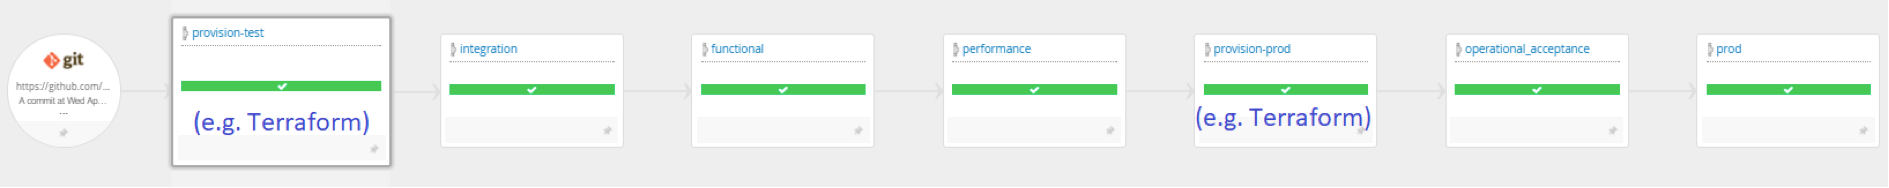 Target pipeline with automated provisioning screen shot